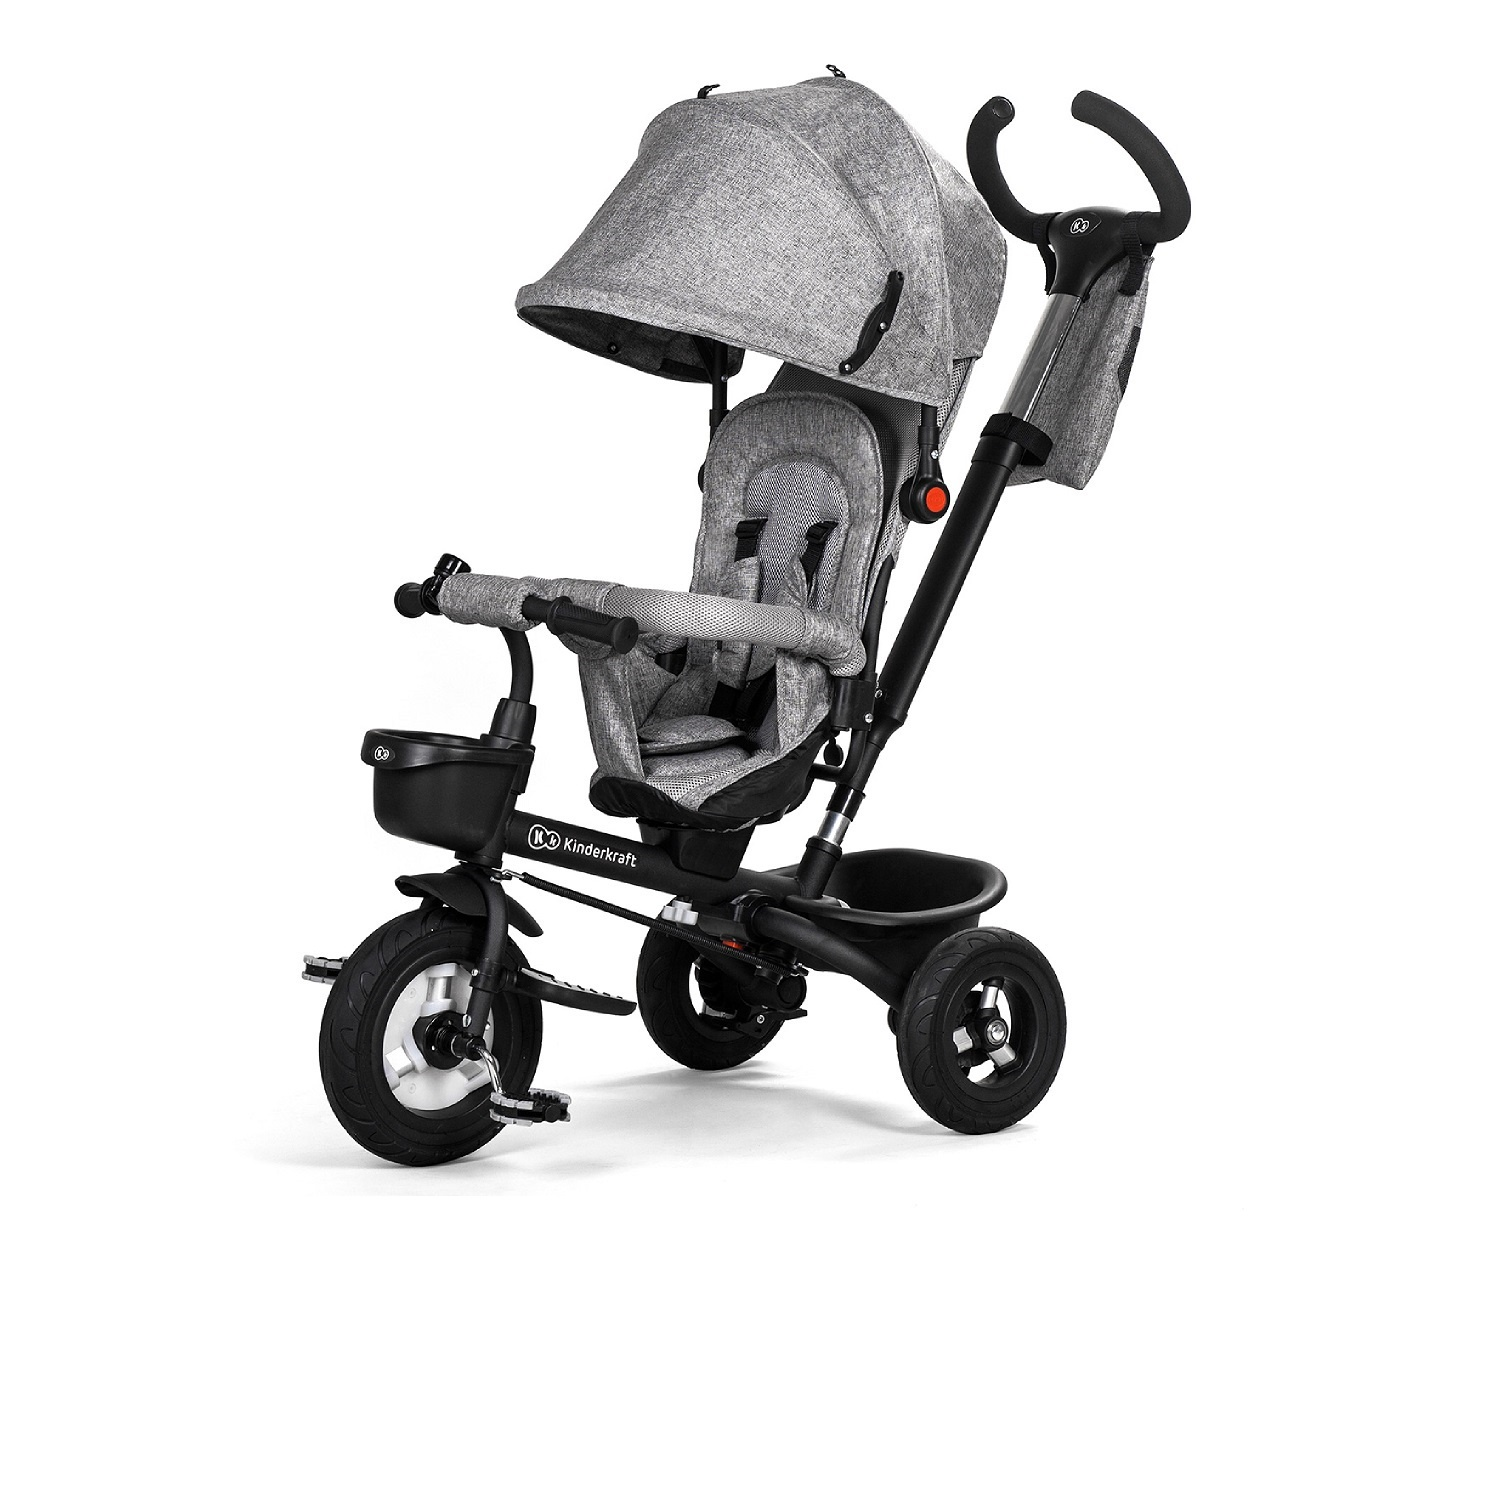 Велосипед Велосипед Kinderkraft Aveo Grey складной Aveo, KKRAVEOGRY0000, серый